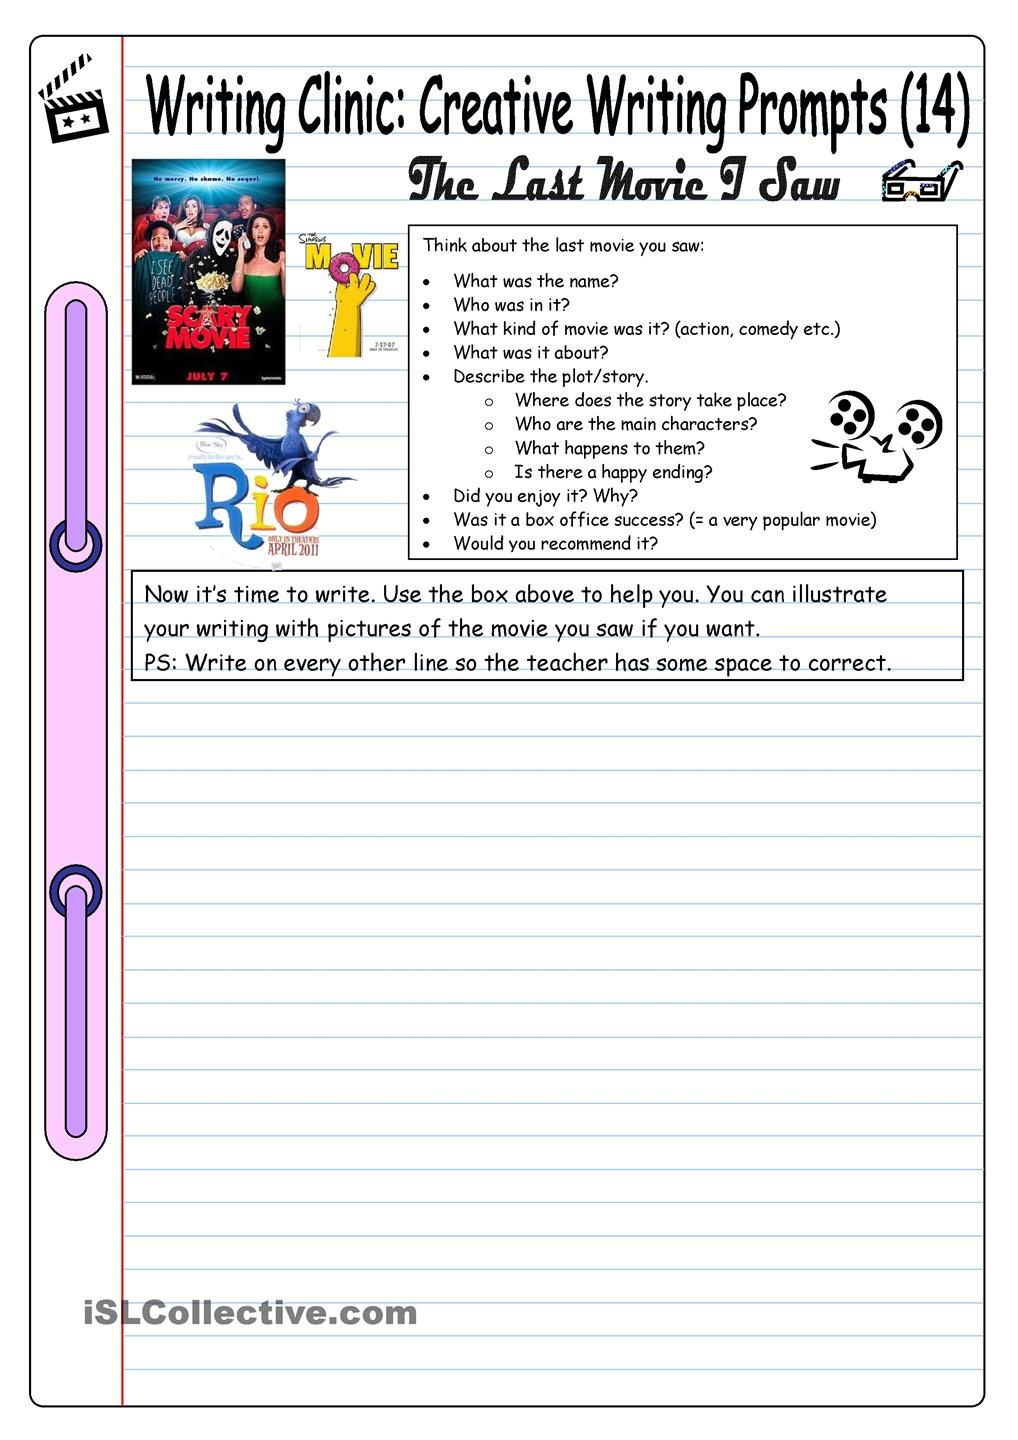 FREE ESL Creative Writing Prompts Pinterest Kid friendly rubric checklist for student writing  perfect for writing  station or creative writing assignments  Laminate and place this chart in  kiddos